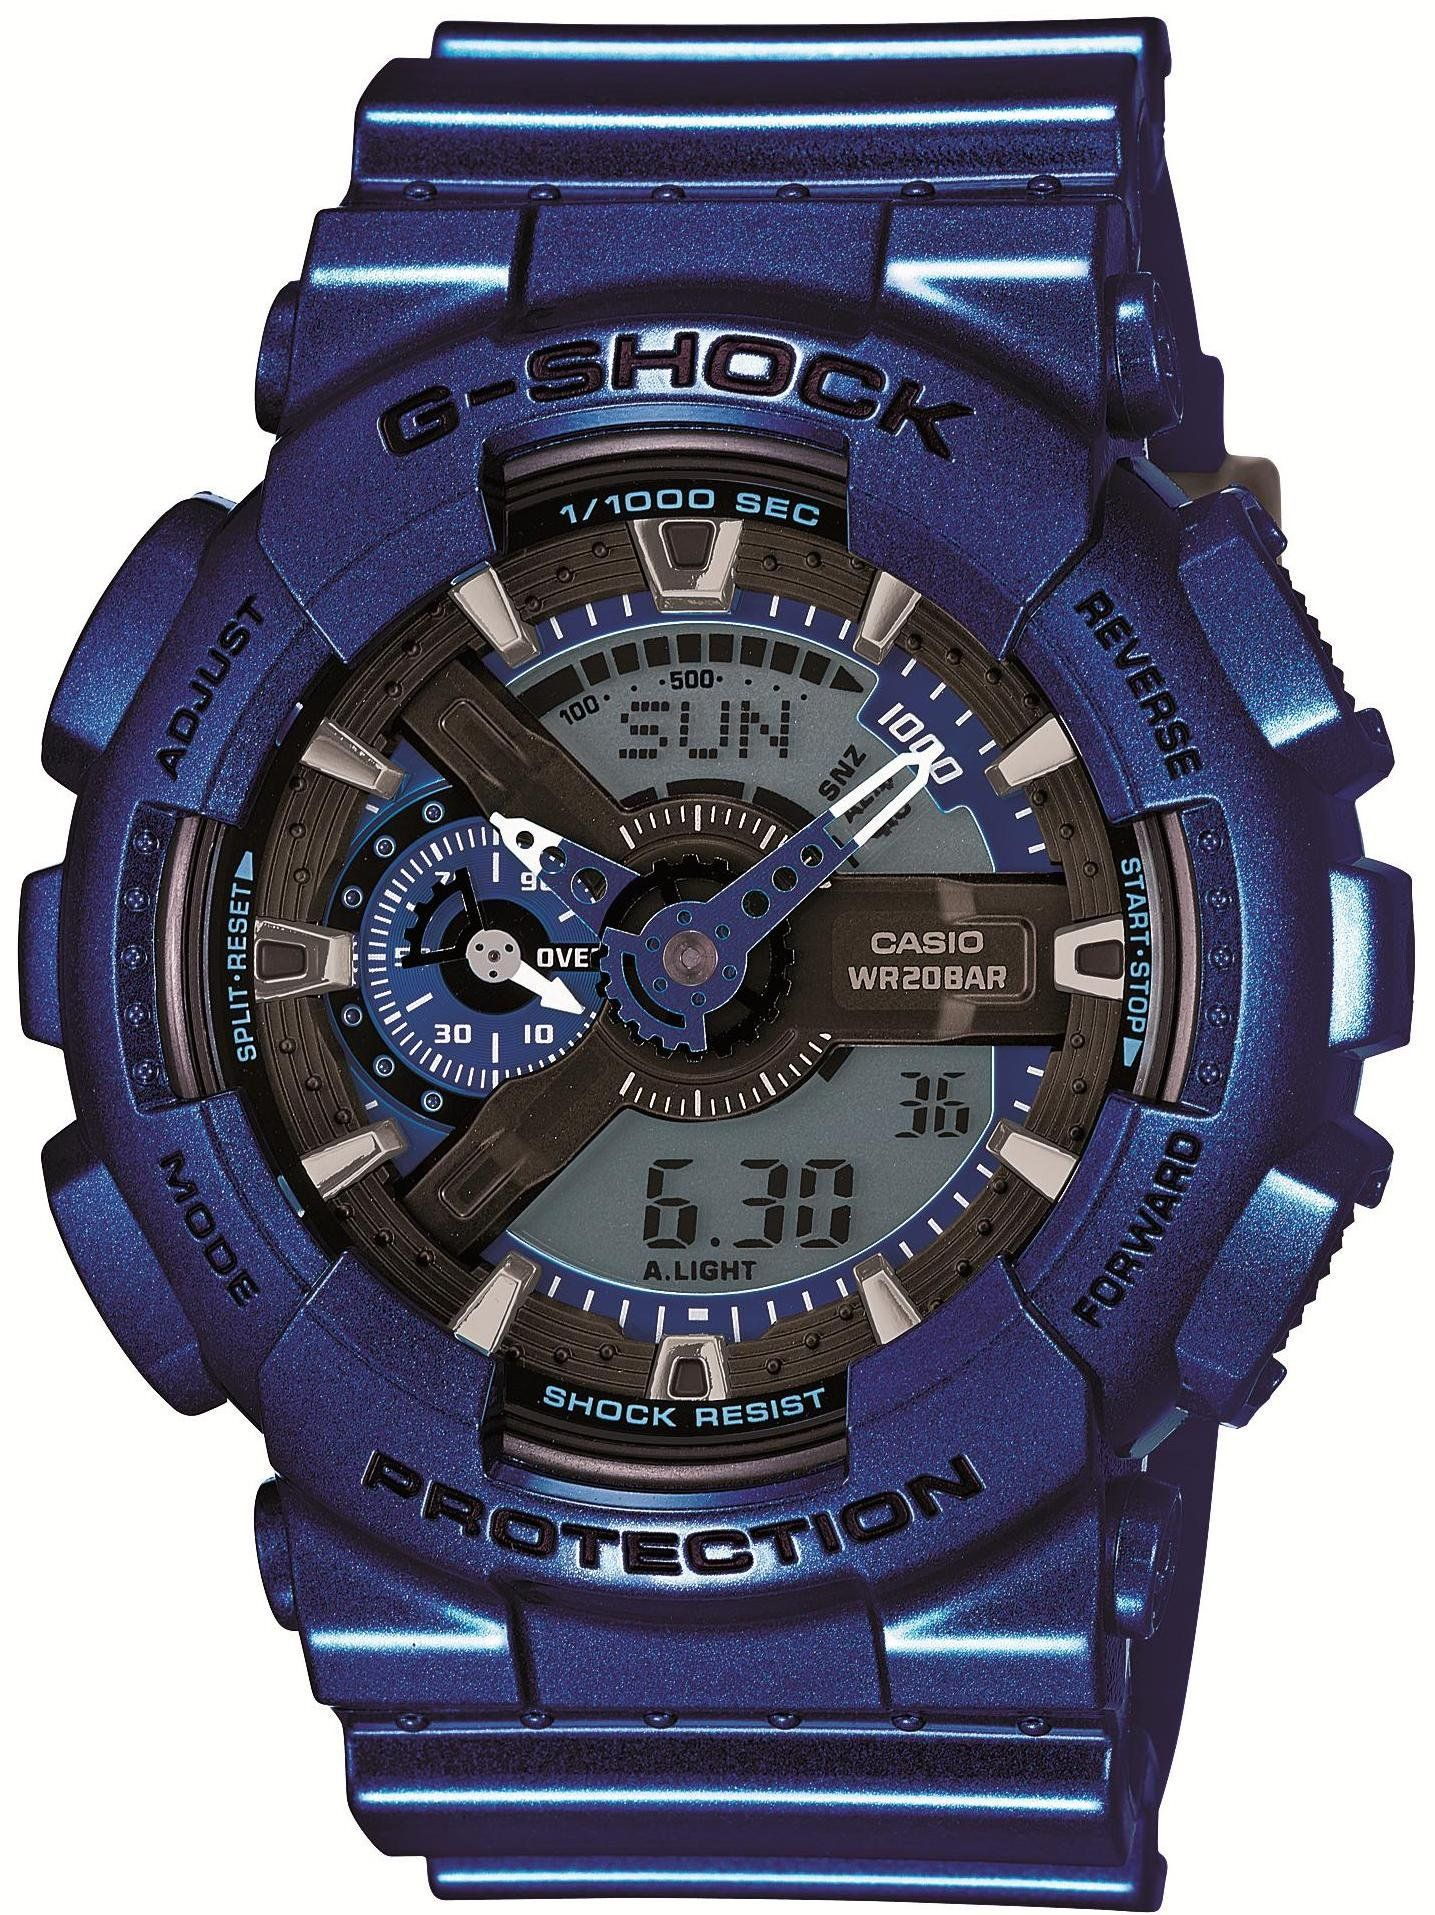 Casio G-Shock Blue-Tone Analog Digital Dial Resin Quartz Men's Watch GA110NM-2A. Shock and Magnetic Resistant 200 Meter Water Resistant Auto LED Light w/ Afterglow World Time Multi-Function Alarms (4) w/ Snooze Timer & Stopwatch Full Auto Calendar Quartz Battery Movement Analog & Digital G Shock Tough Comes in Original Box, Tin Can w/ Warranty.